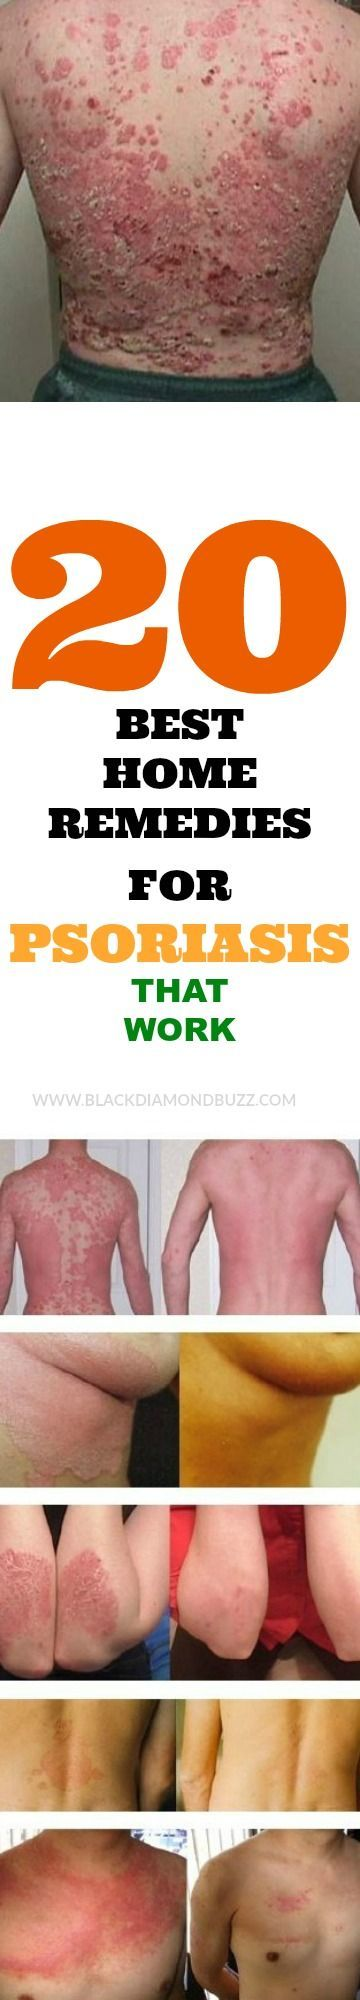 20 Best  Home Remedies For Psoriasis That Work.   #Psoriasisdiet #psoriasis #scalpposriasis #healingporiasis #homeremedies #naturalremedies #alternativemedicine